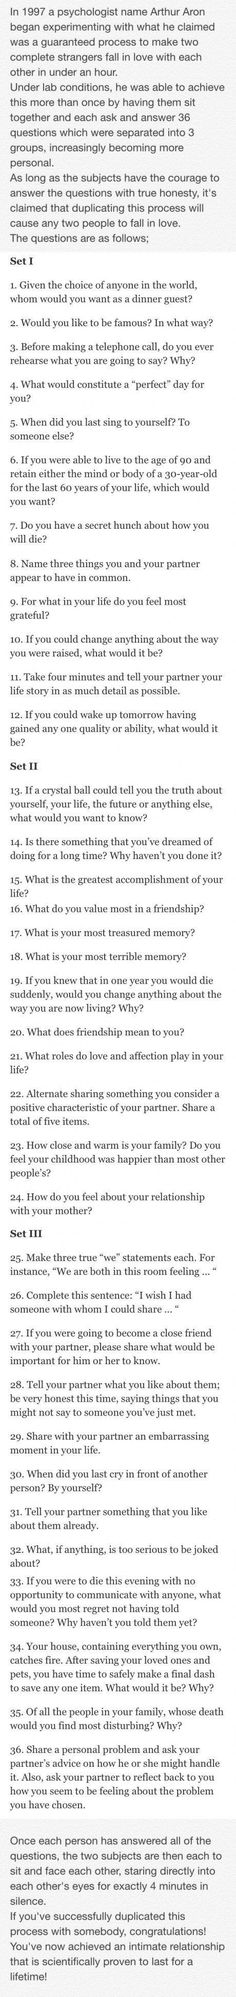 Questions to ask when getting to know someone. Great conversation starters.: